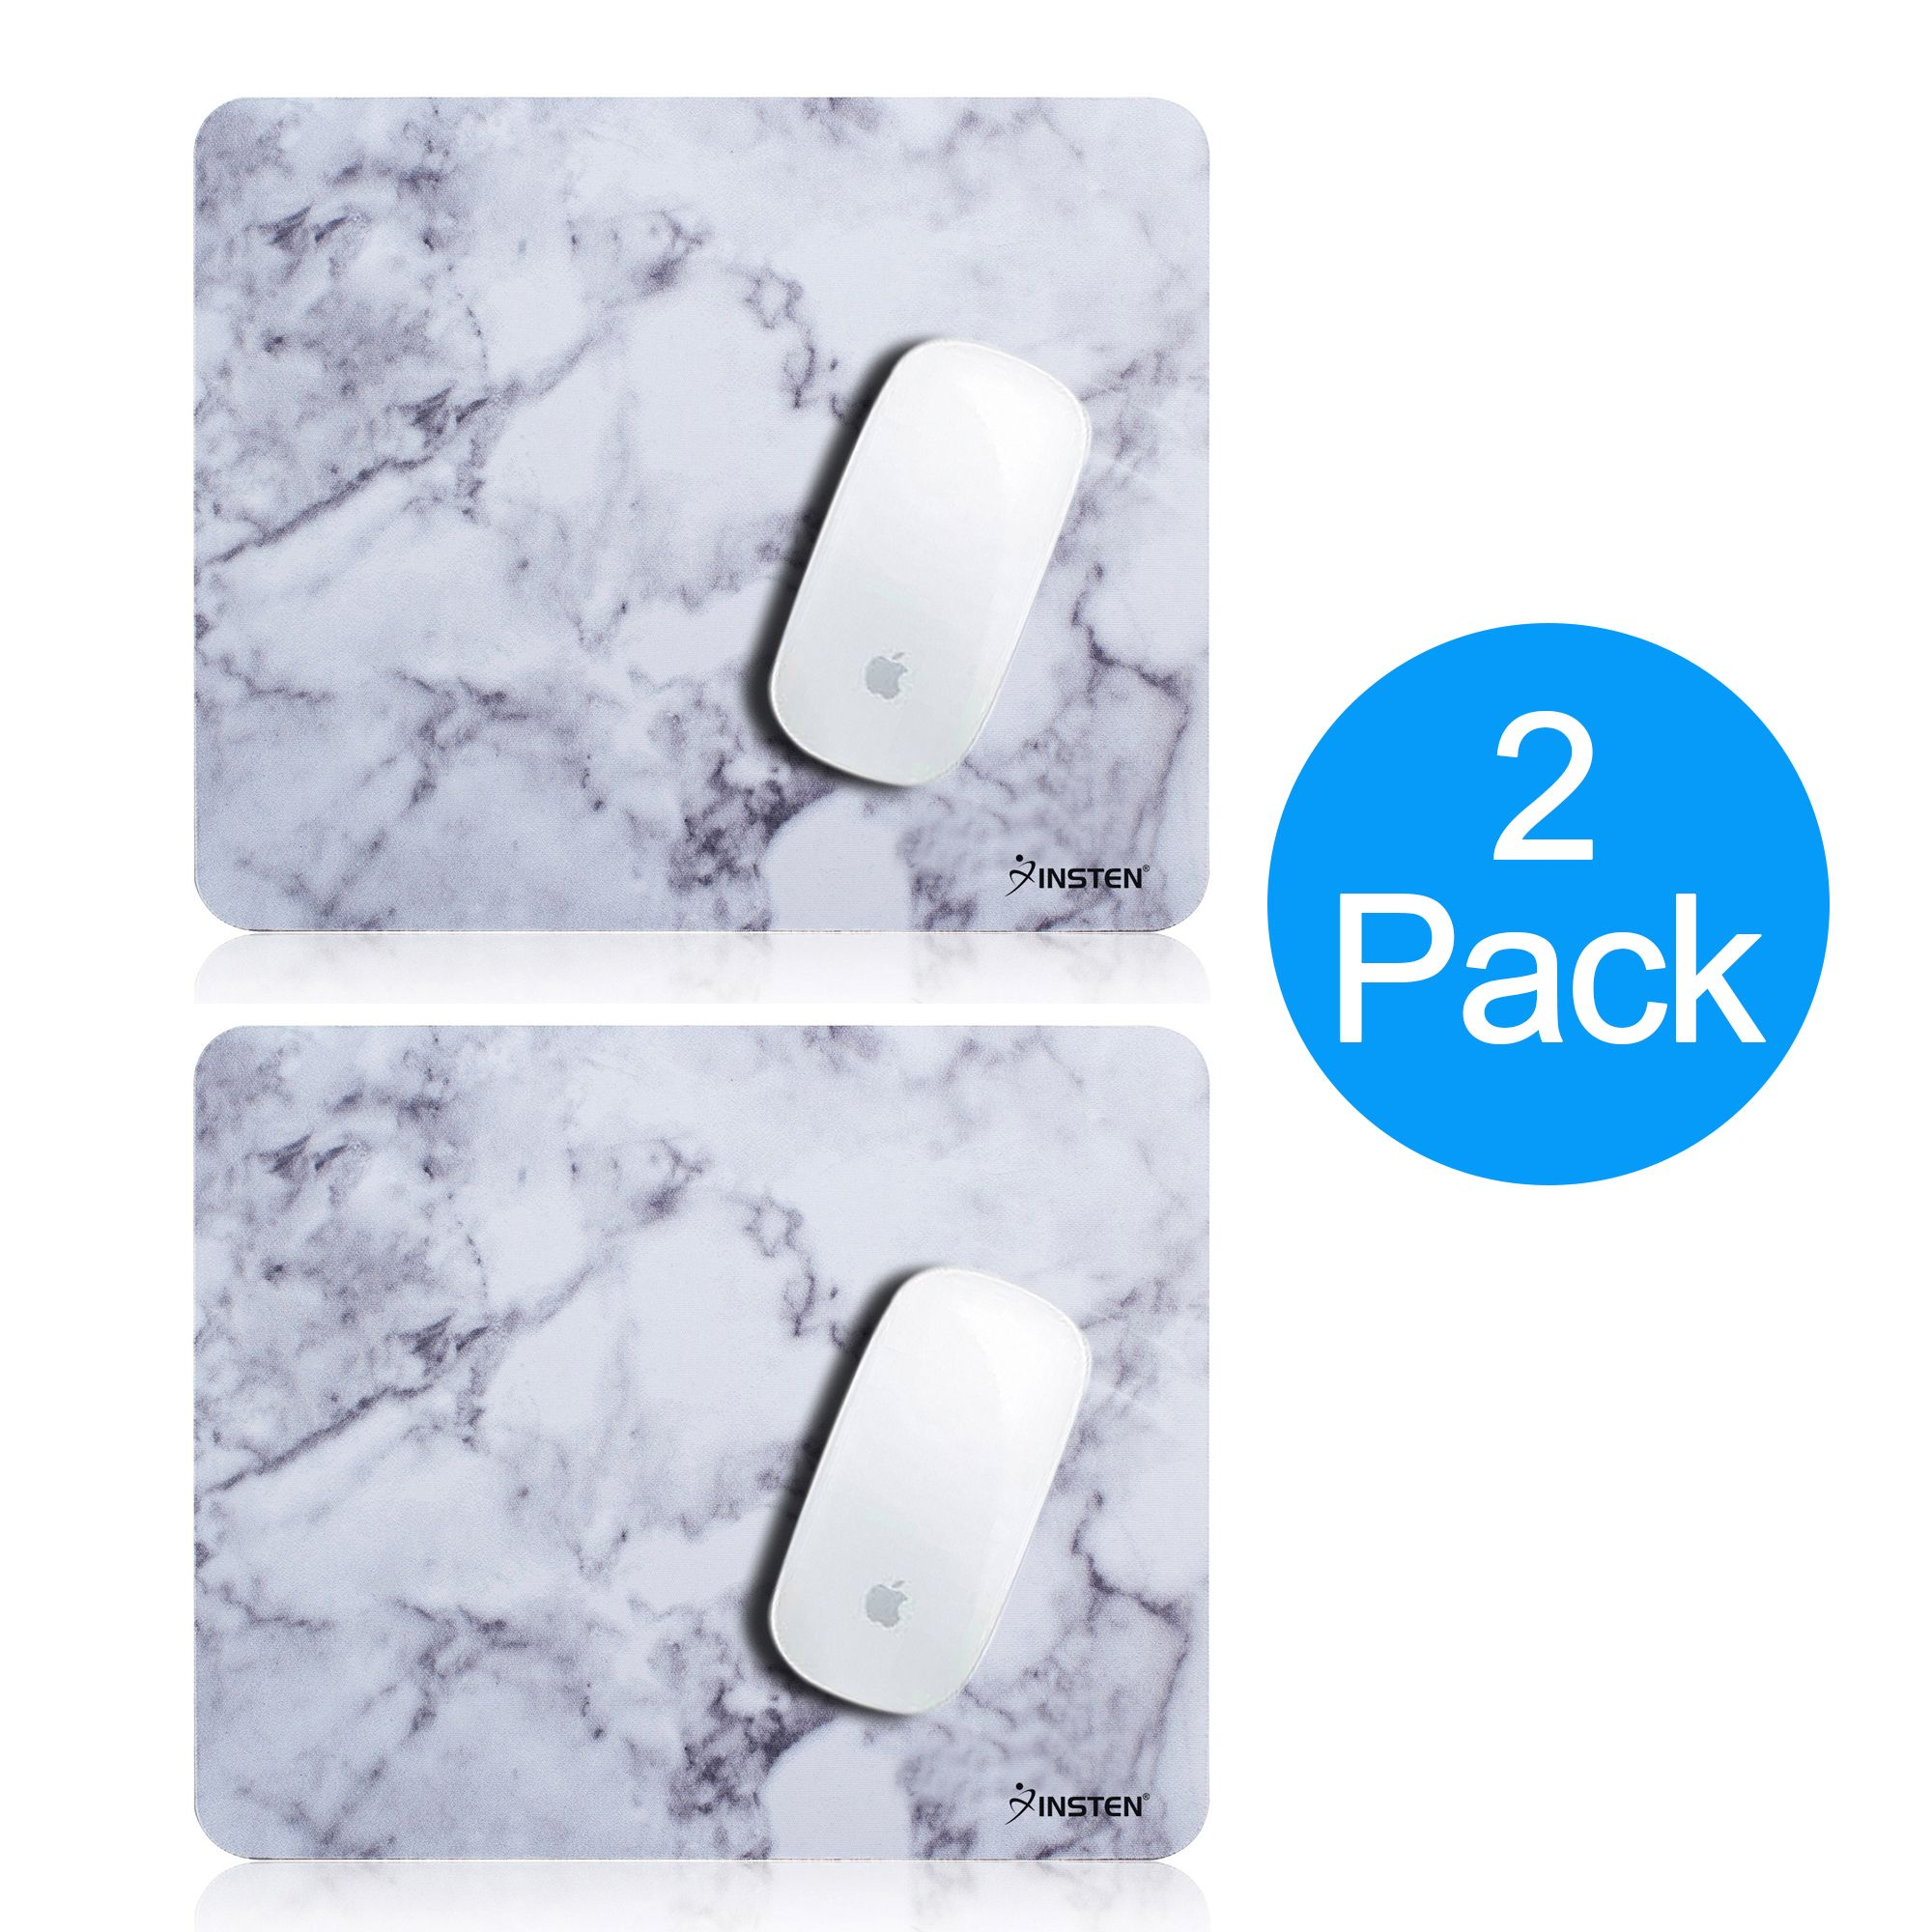 2 Pack Insten Marble Patterned Mouse Pad with Nonskid Rubber Base Waterproof Coating Mousepad Mat for Computer Desk PC Gaming (8.6 inch x 7 inch) Marble White